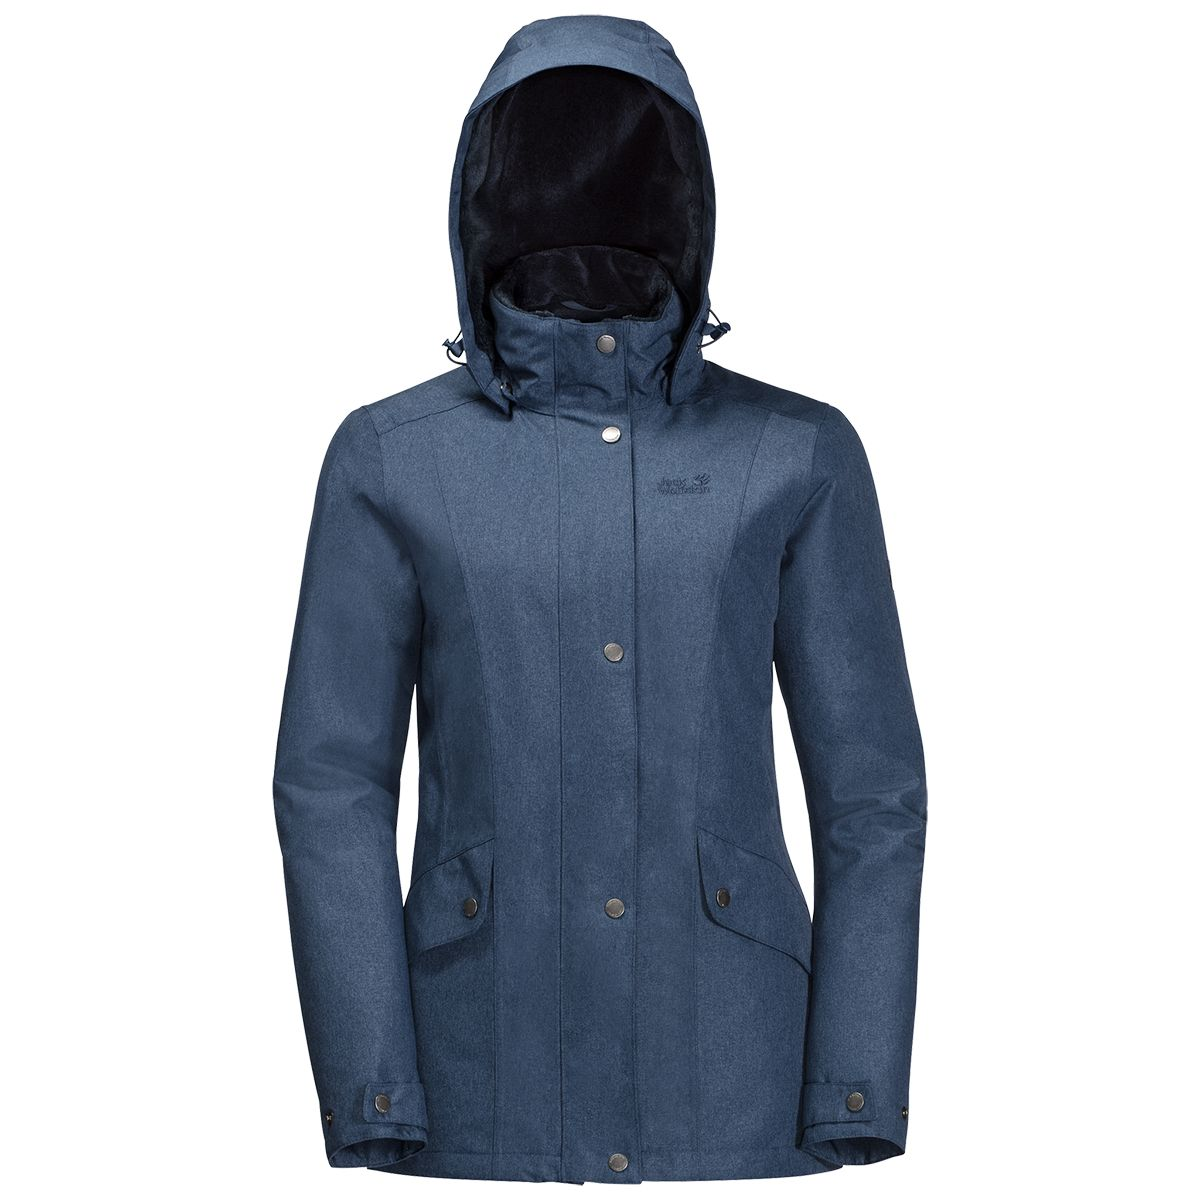 PARK AVENUE JACKET Damen Winterjacke